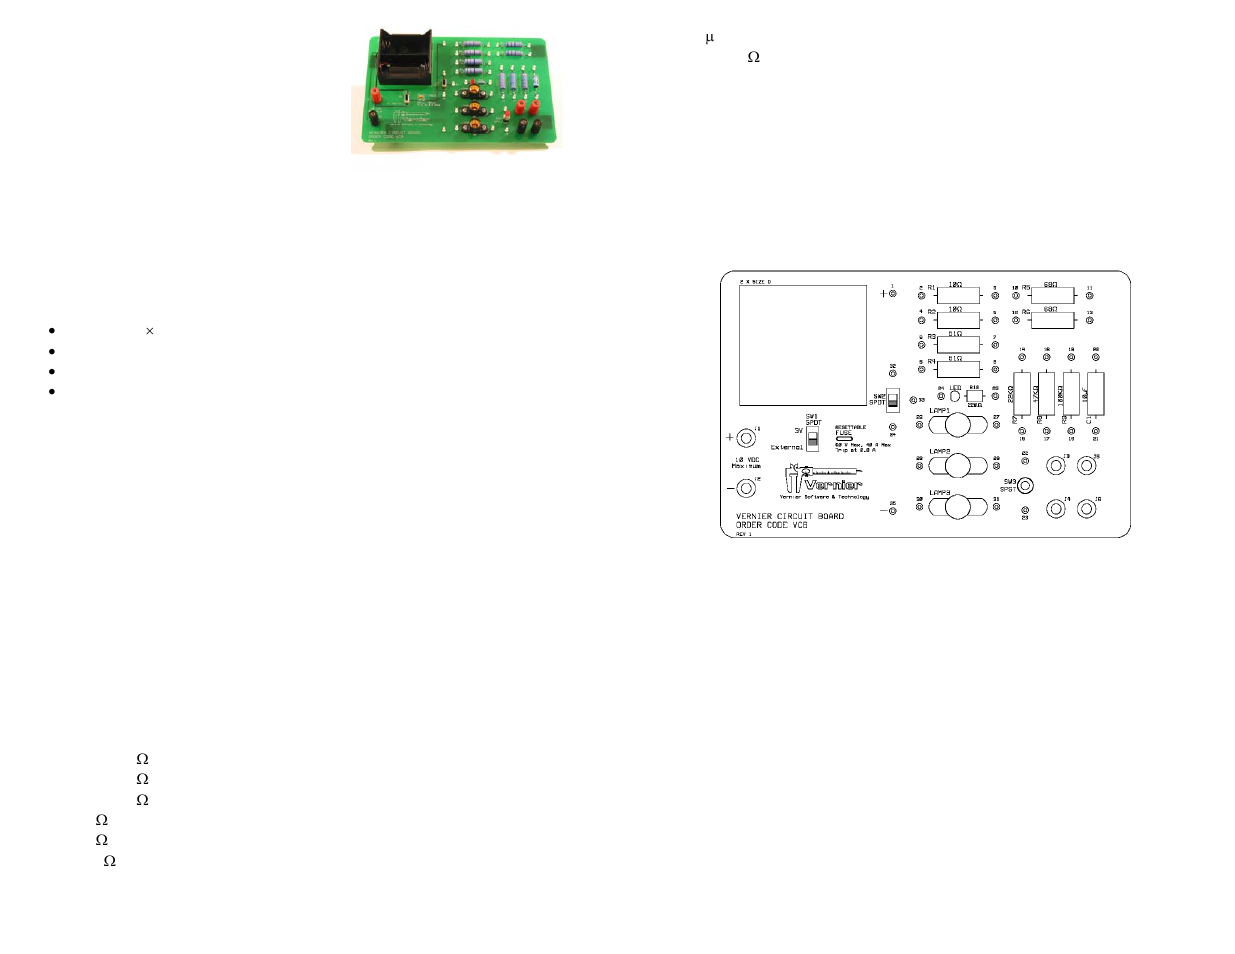 Vernier Circuit Board User Manual 2 Pages Image Of The